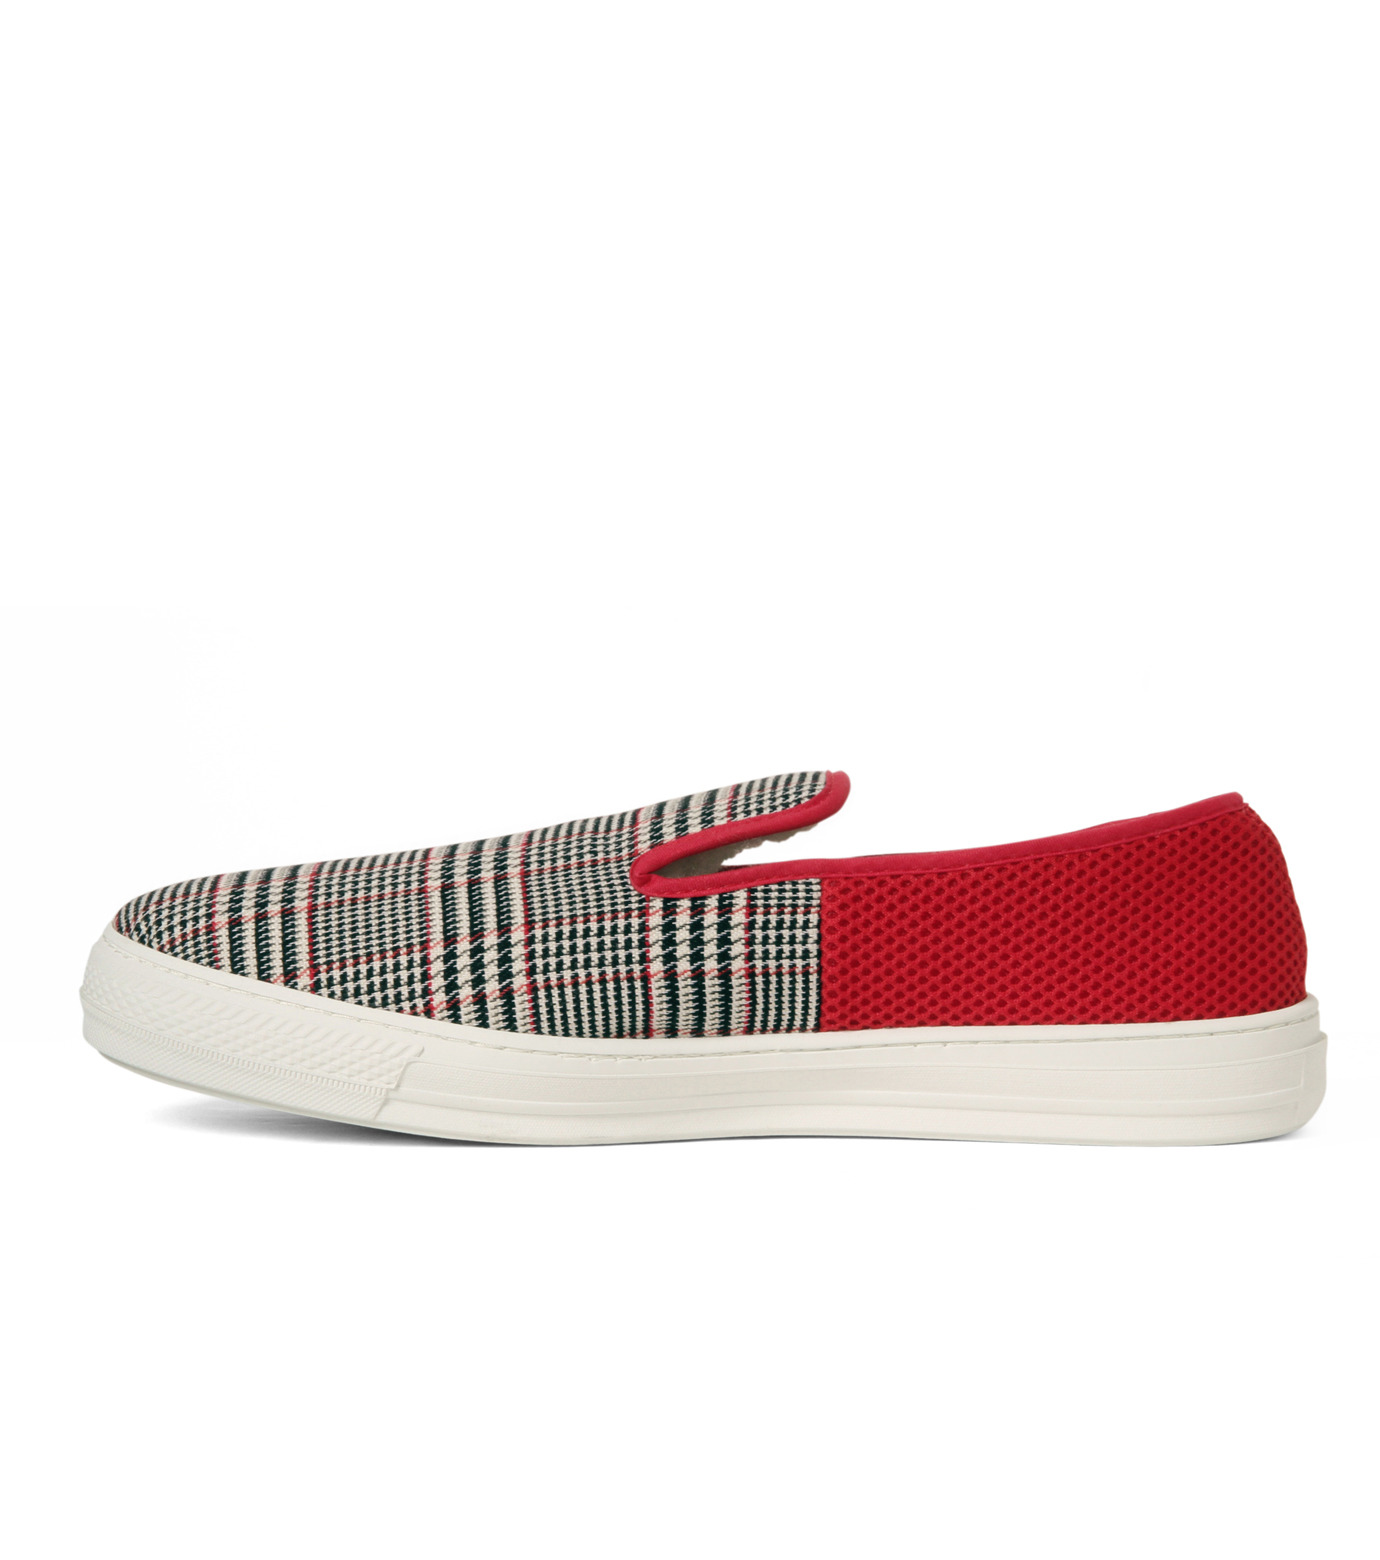 TAISE by SOUSTS(TAISE by SOUSTS)のANATOLE Grey/Red-GRAY(スニーカー/sneaker)-ANATOLE-11 拡大詳細画像2